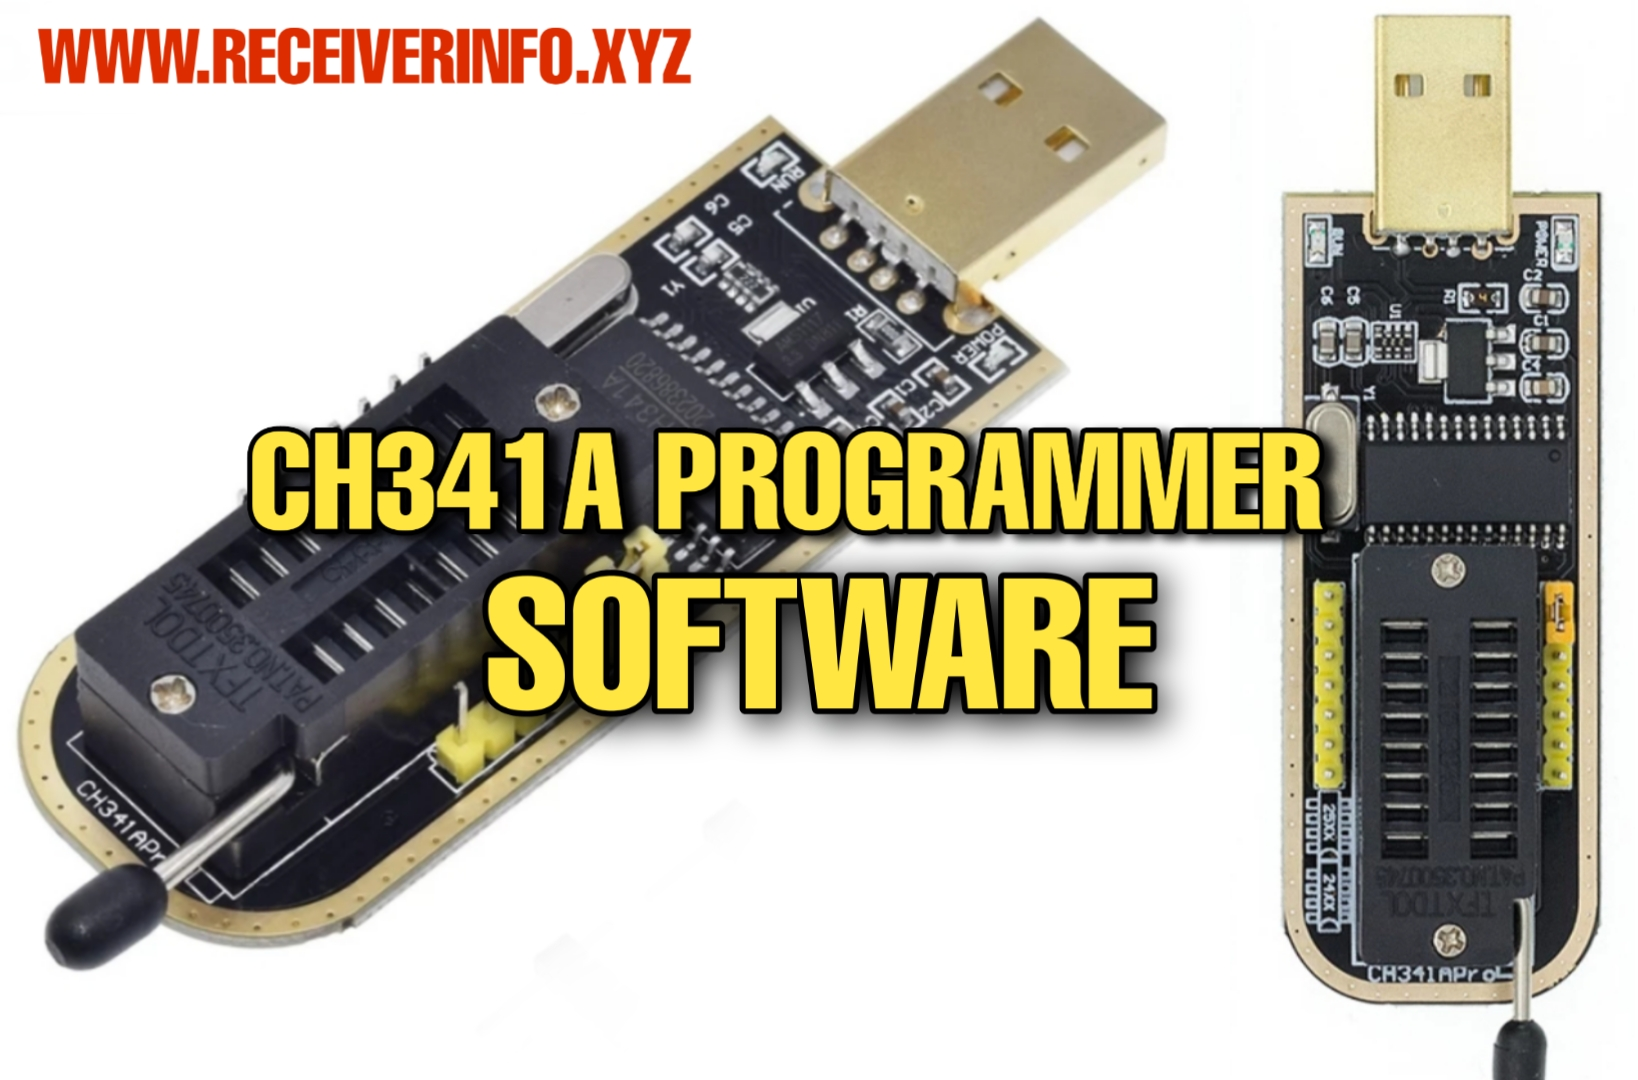 CH341A PROGRAMMER NEW SOFTWARE DOWNLOAD